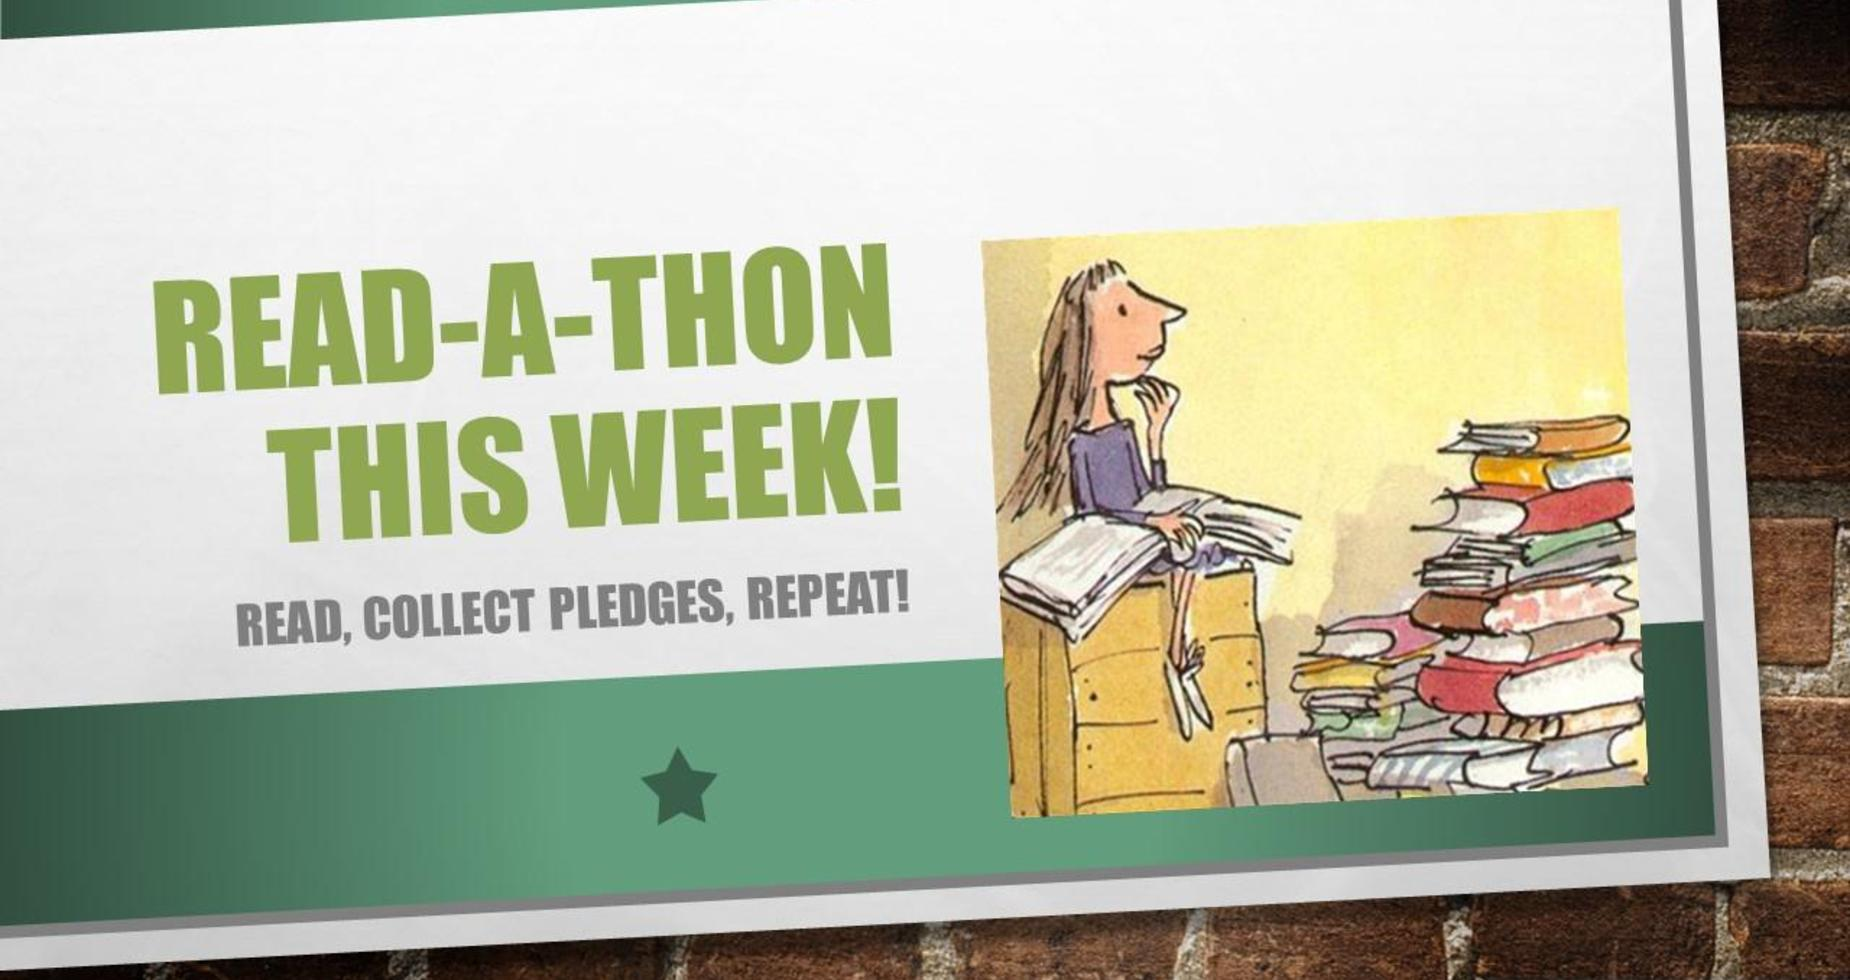 Read-A-Thon This Week: Read, Collect Pledges, Repeat!